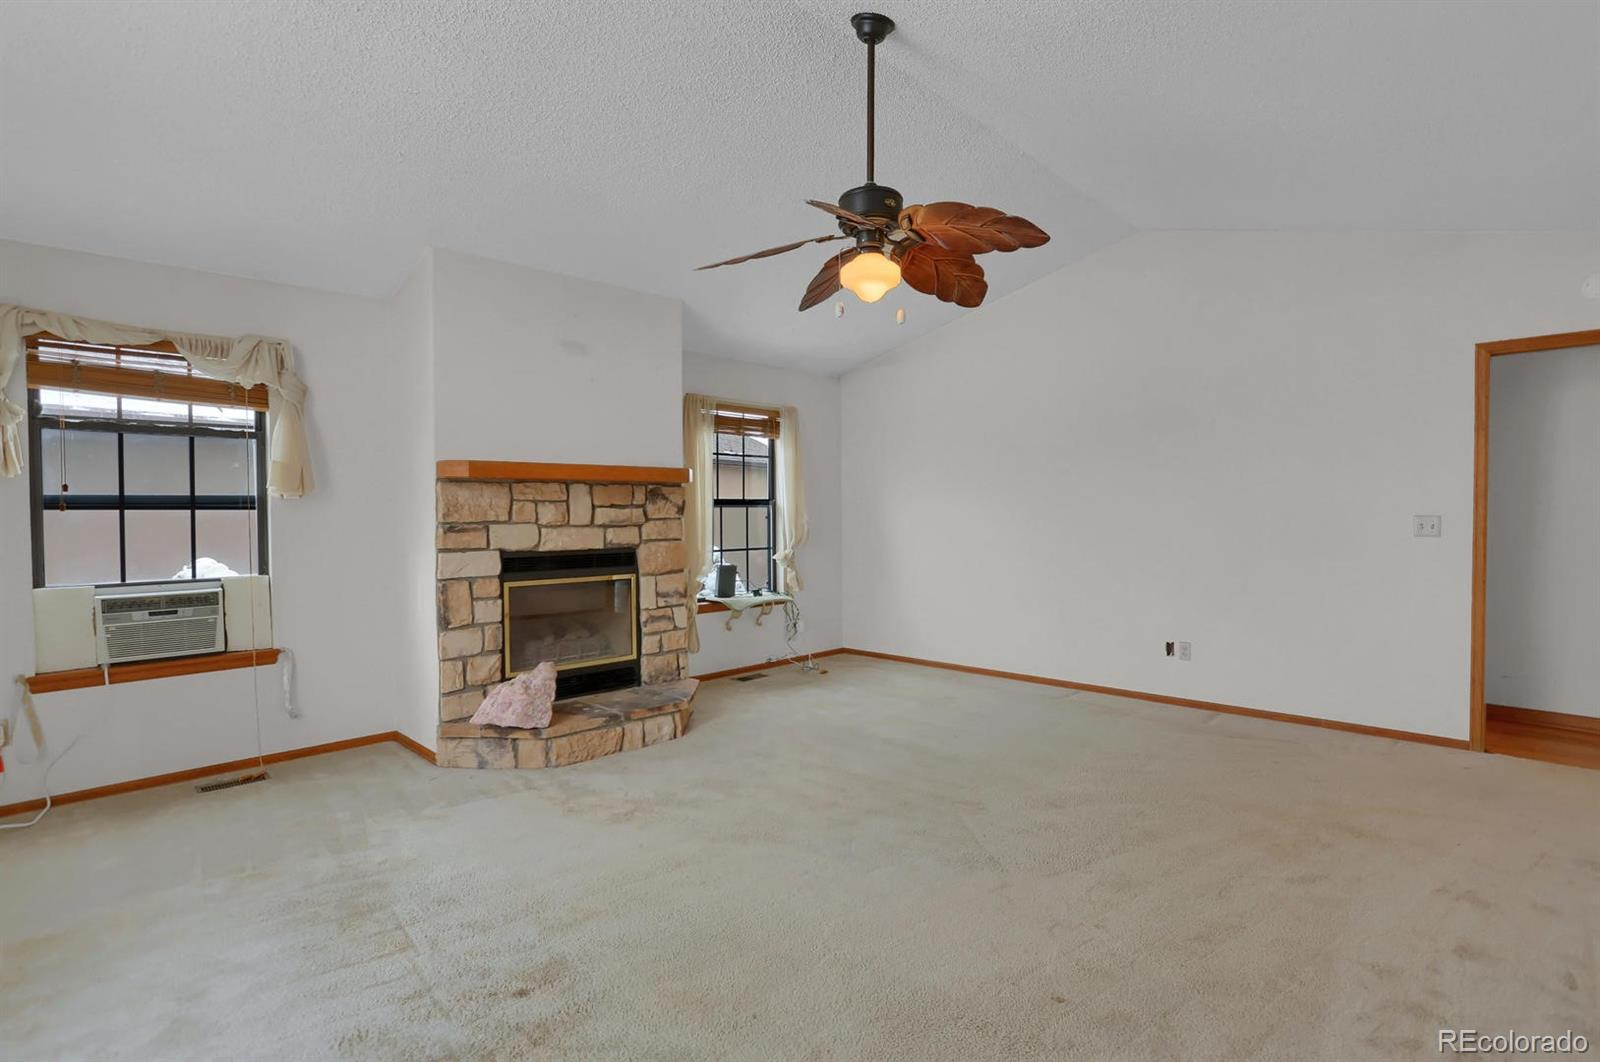 MLS# 9468423 - 9 - 4870 Purcell Drive, Colorado Springs, CO 80922